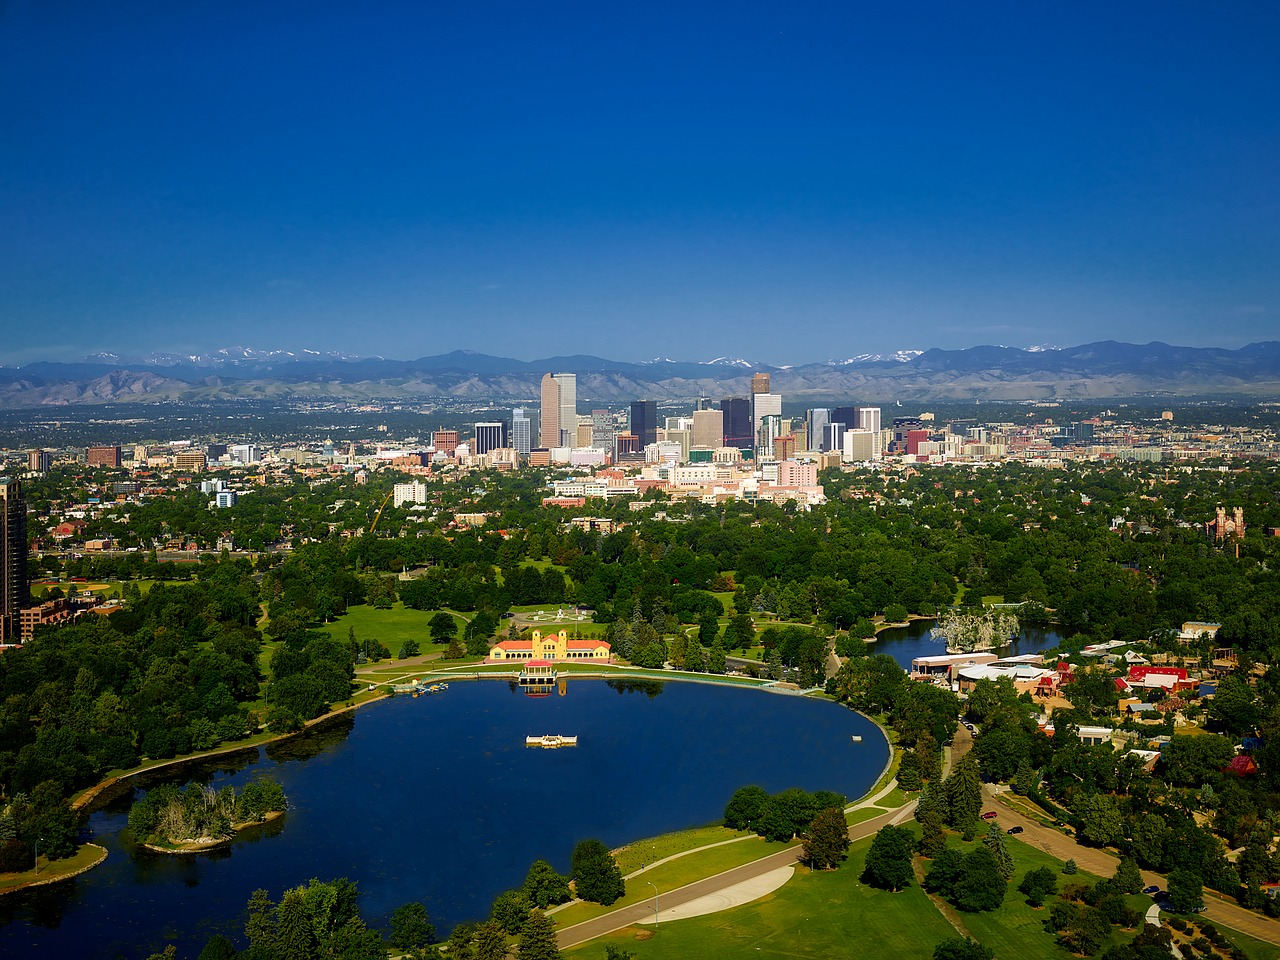 https://travelinspires.org/wp-content/uploads/2019/05/Denver-Colorado-3-days.jpg